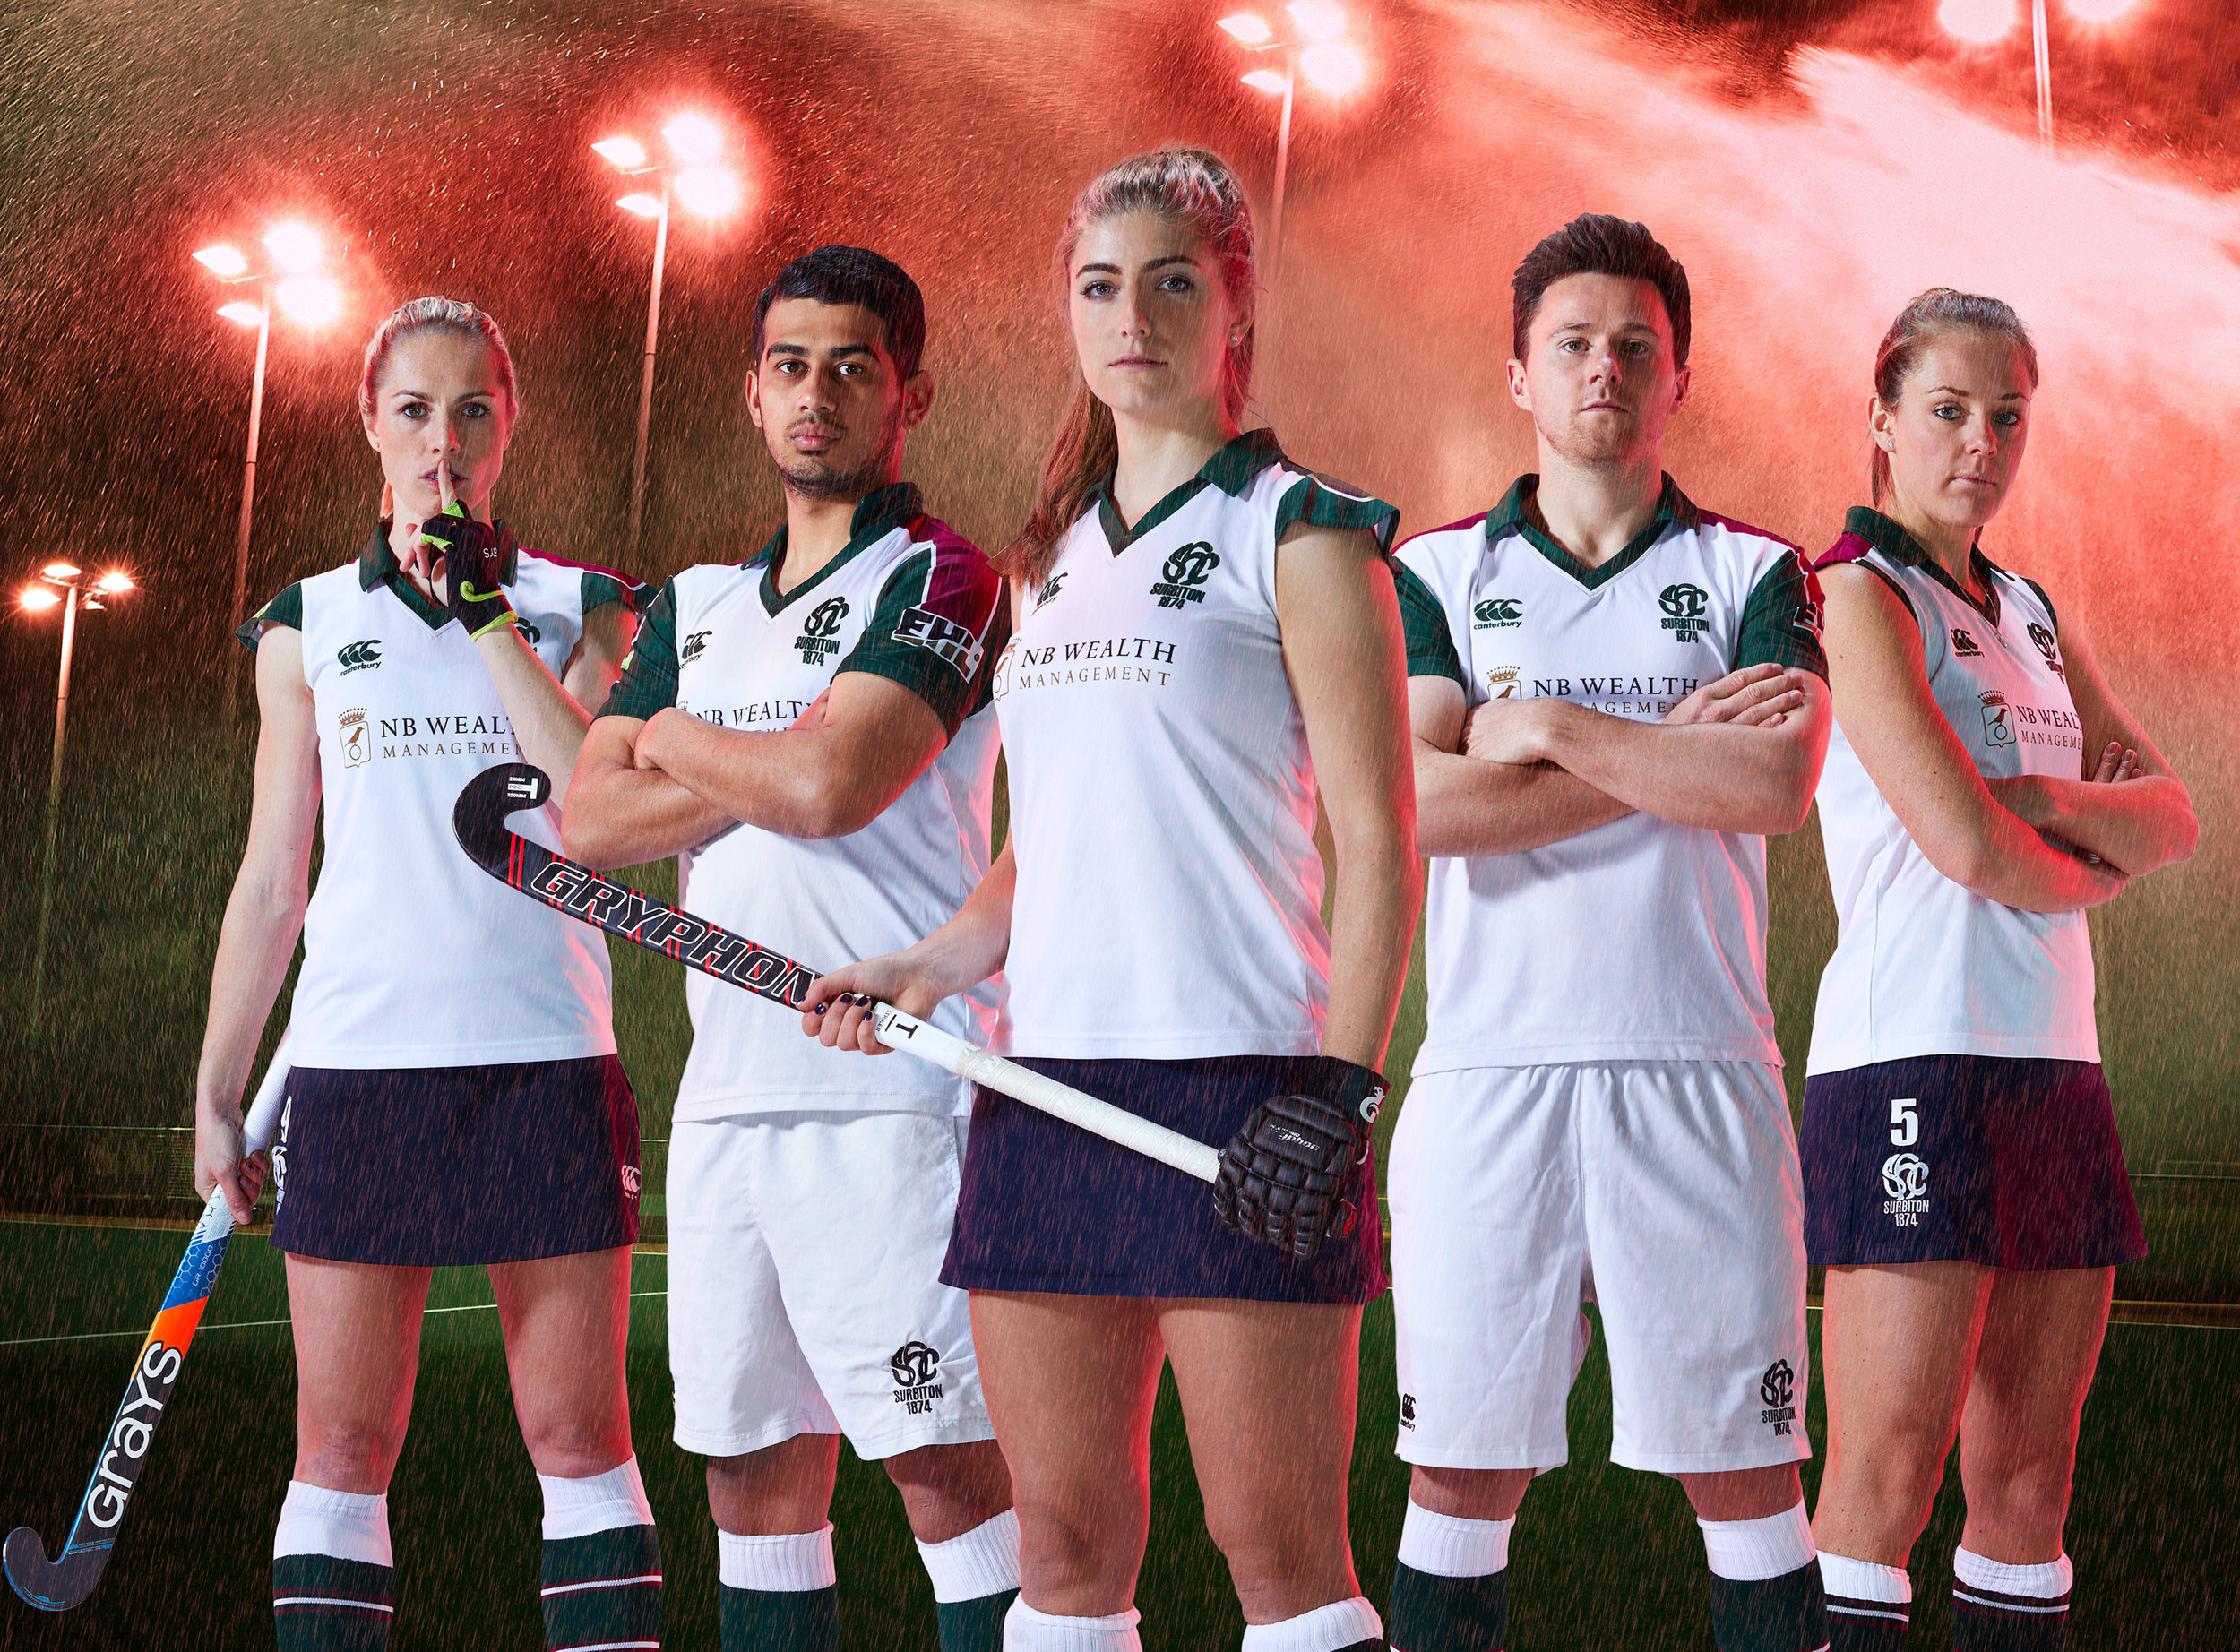 Sports & Fitness Portraits of Surbiton Hockey Club Women's and Men's